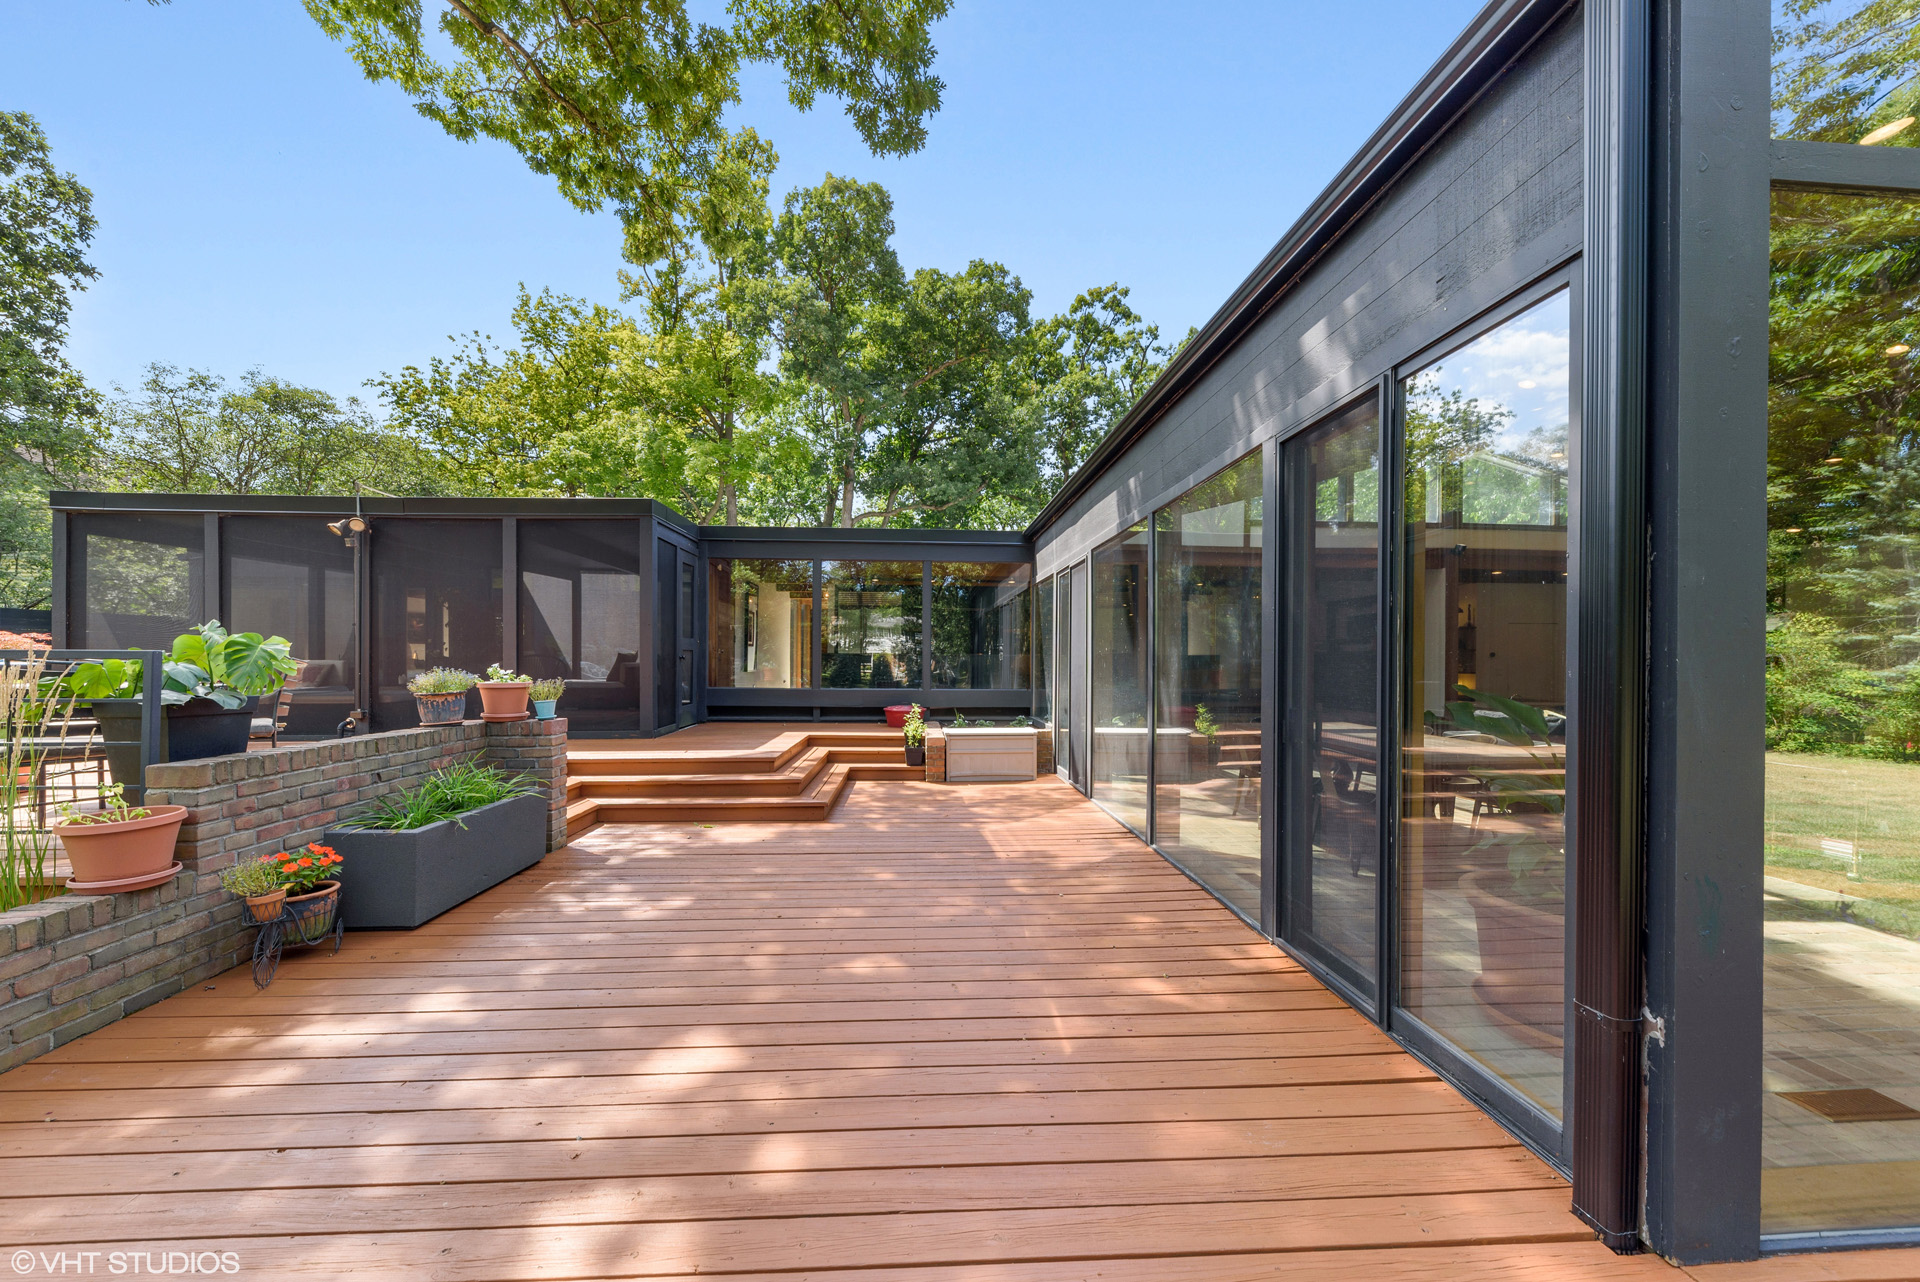 1463 Northwoods Road - Deerfield - Exclusively represented by Lou Zucaro of Baird & Warner and Modern Illinois. Contact me at 312.907.4085 or send an email to lou@modernil.com to arrange for a private showing.